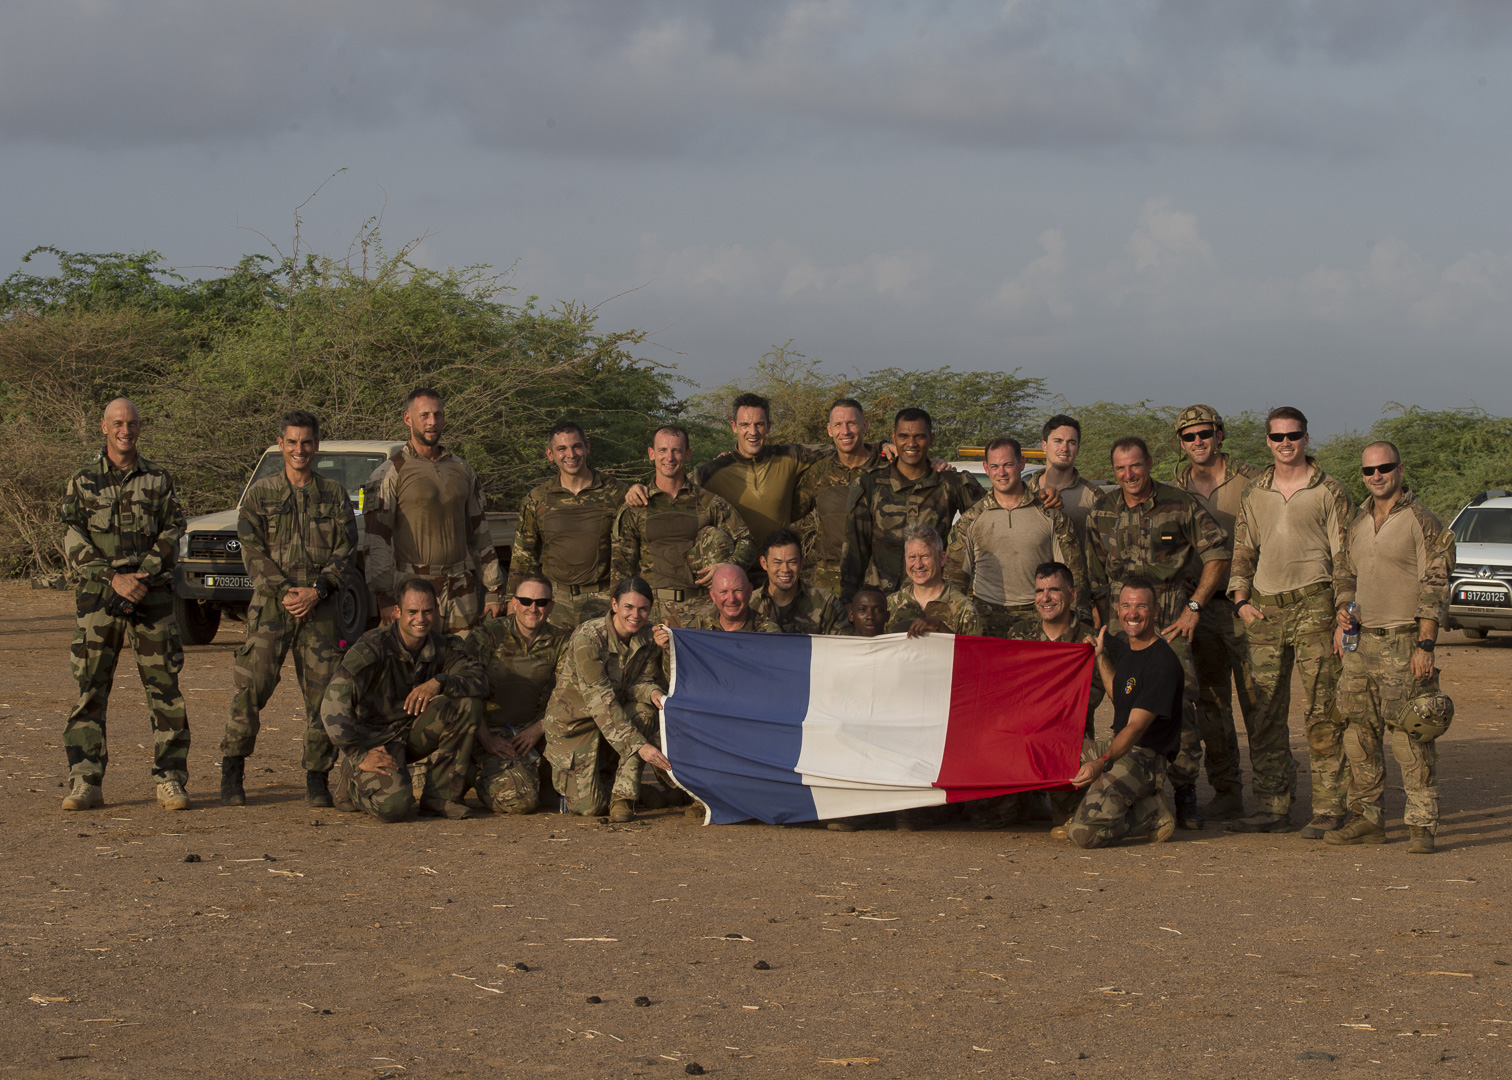 U.S. and French servicemembers pose for a group photo after a static line jump outside Djibouti City, Djibouti, Sept. 29, 2019.  American service members and coalition partners jumped together to celebrate the Feast Day of Archangel Michael, the patron saint of paratroopers. (U.S. Air Force Photo by Senior Airman Codie Trimble) (U.S. Air Force Photo by Senior Airman Codie Trimble)(U.S. Air Force Photo by Senior Airman Codie Trimble)